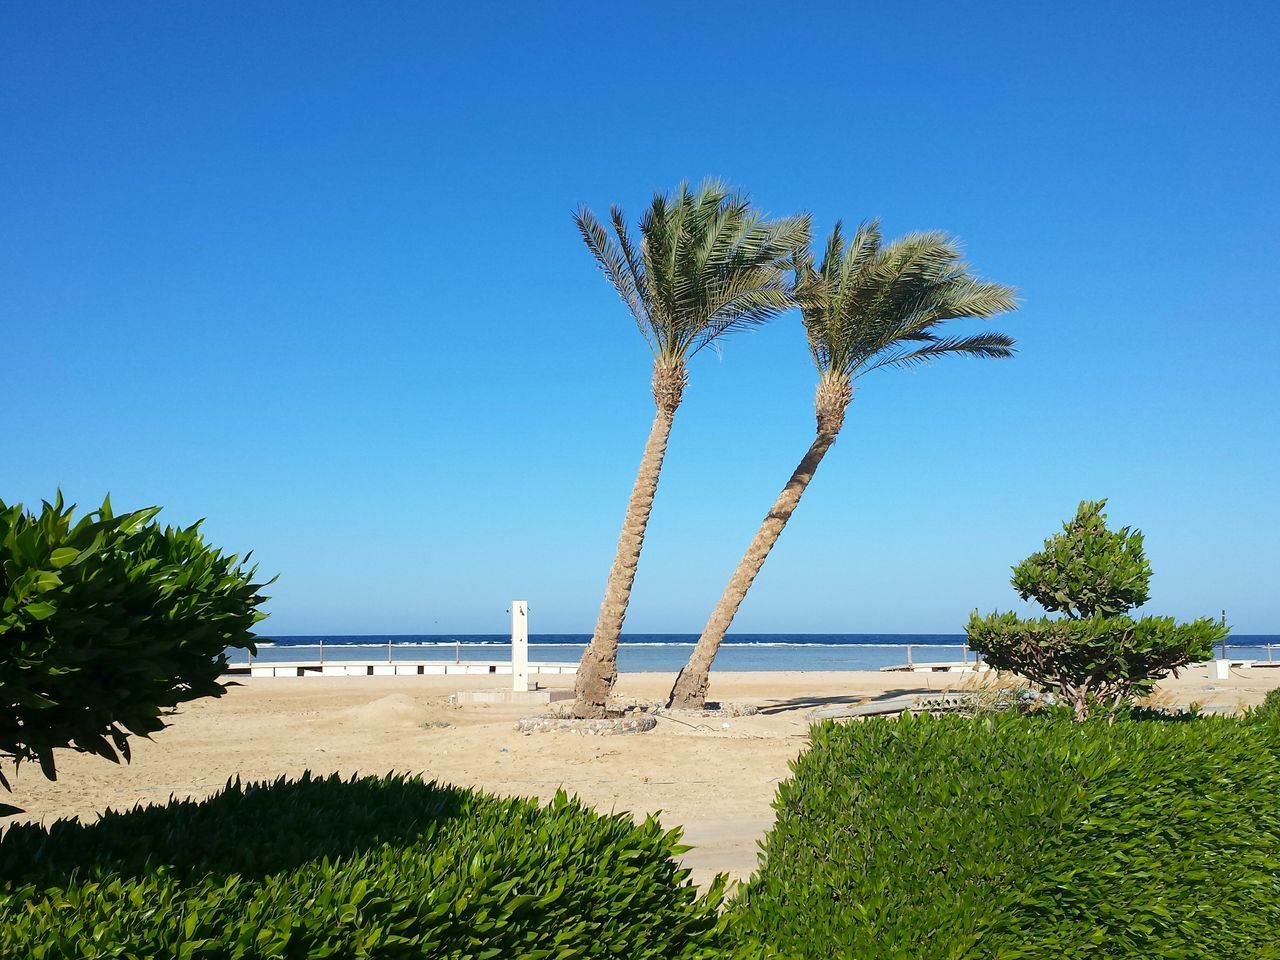 tree, beauty in nature, nature, sand, beach, blue, day, clear sky, tranquil scene, scenics, water, growth, tranquility, sea, no people, outdoors, grass, sky